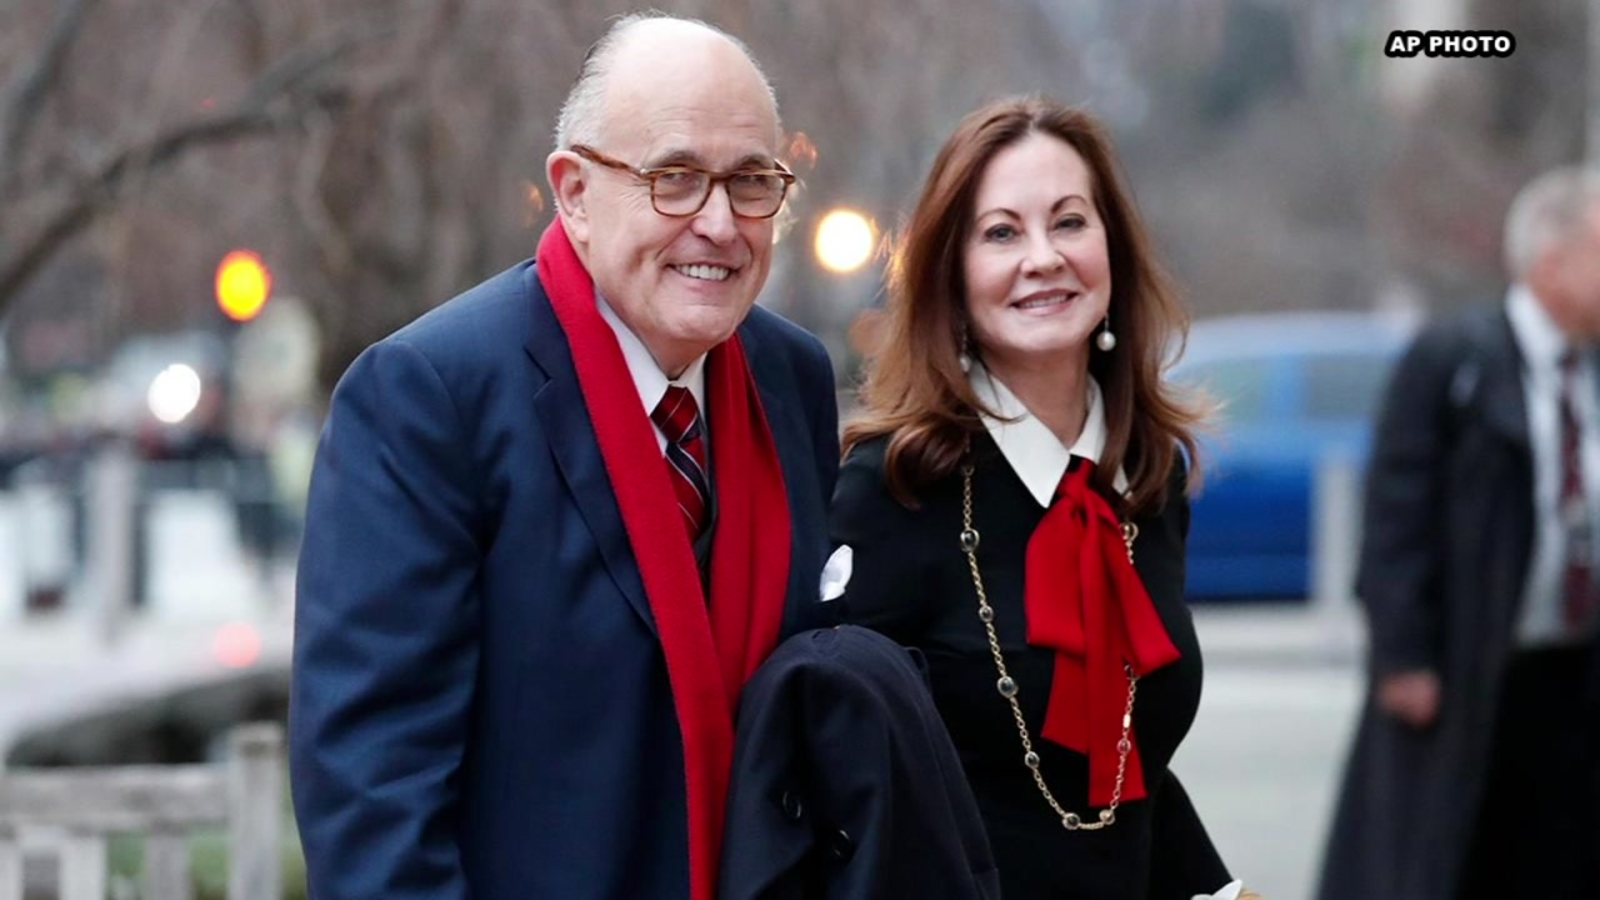 Rudy Giuliani S Third Wife Files For Divorce After 15 Years Of Marriage Abc13 Houston